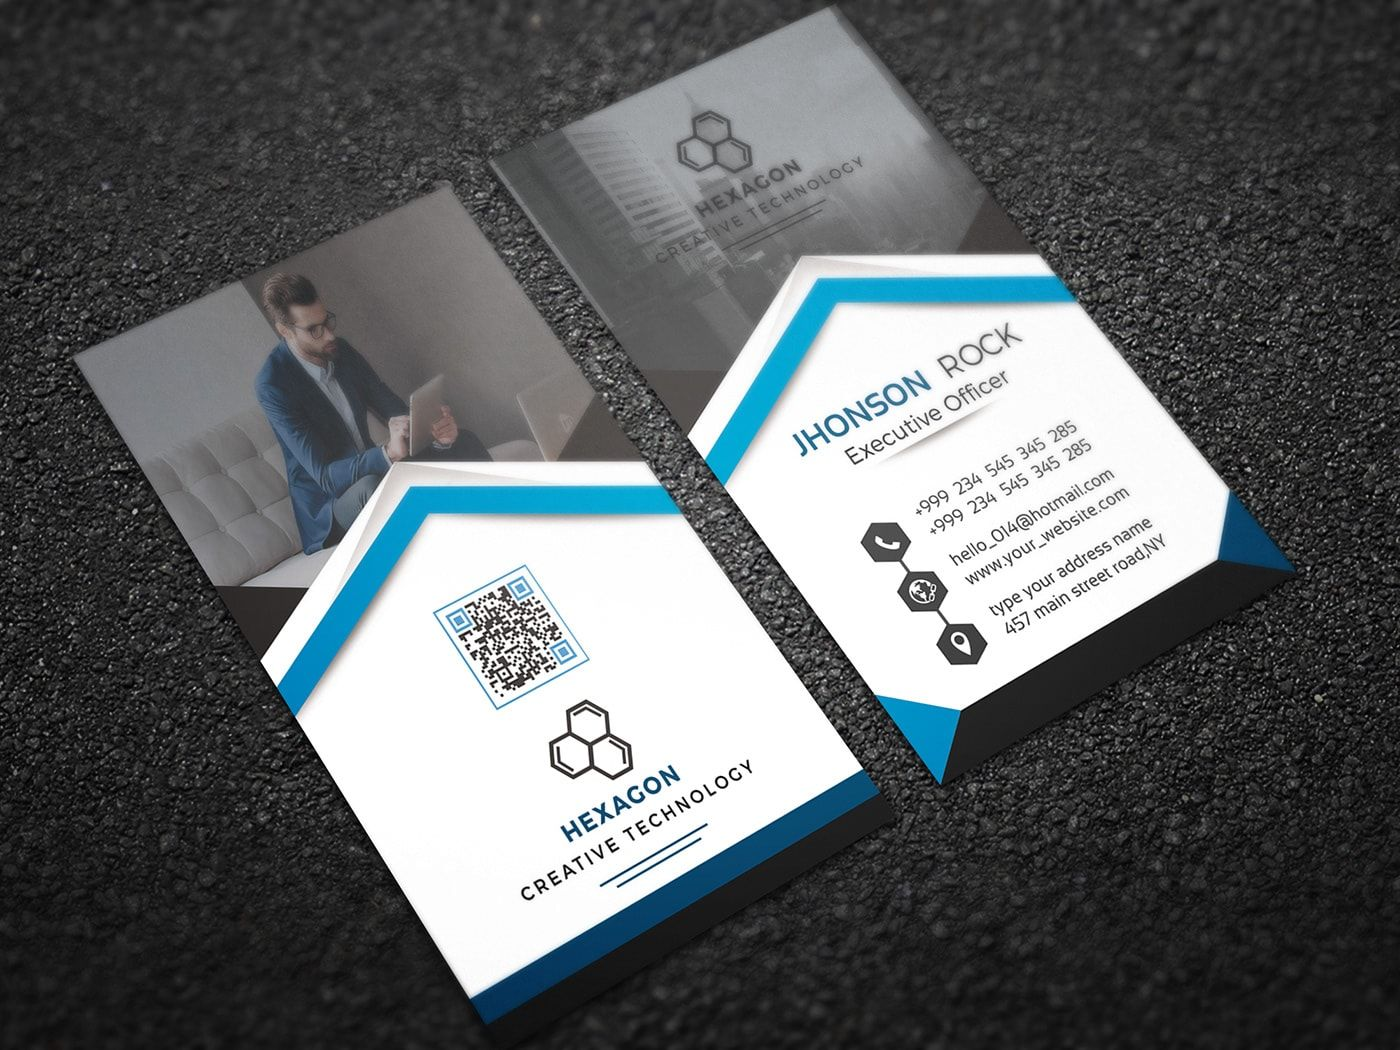 Free Vertical Business Card Download Psd Templates Pixelsdesign Net Vertical Business Cards Free Business Card Templates Free Business Card Mockup